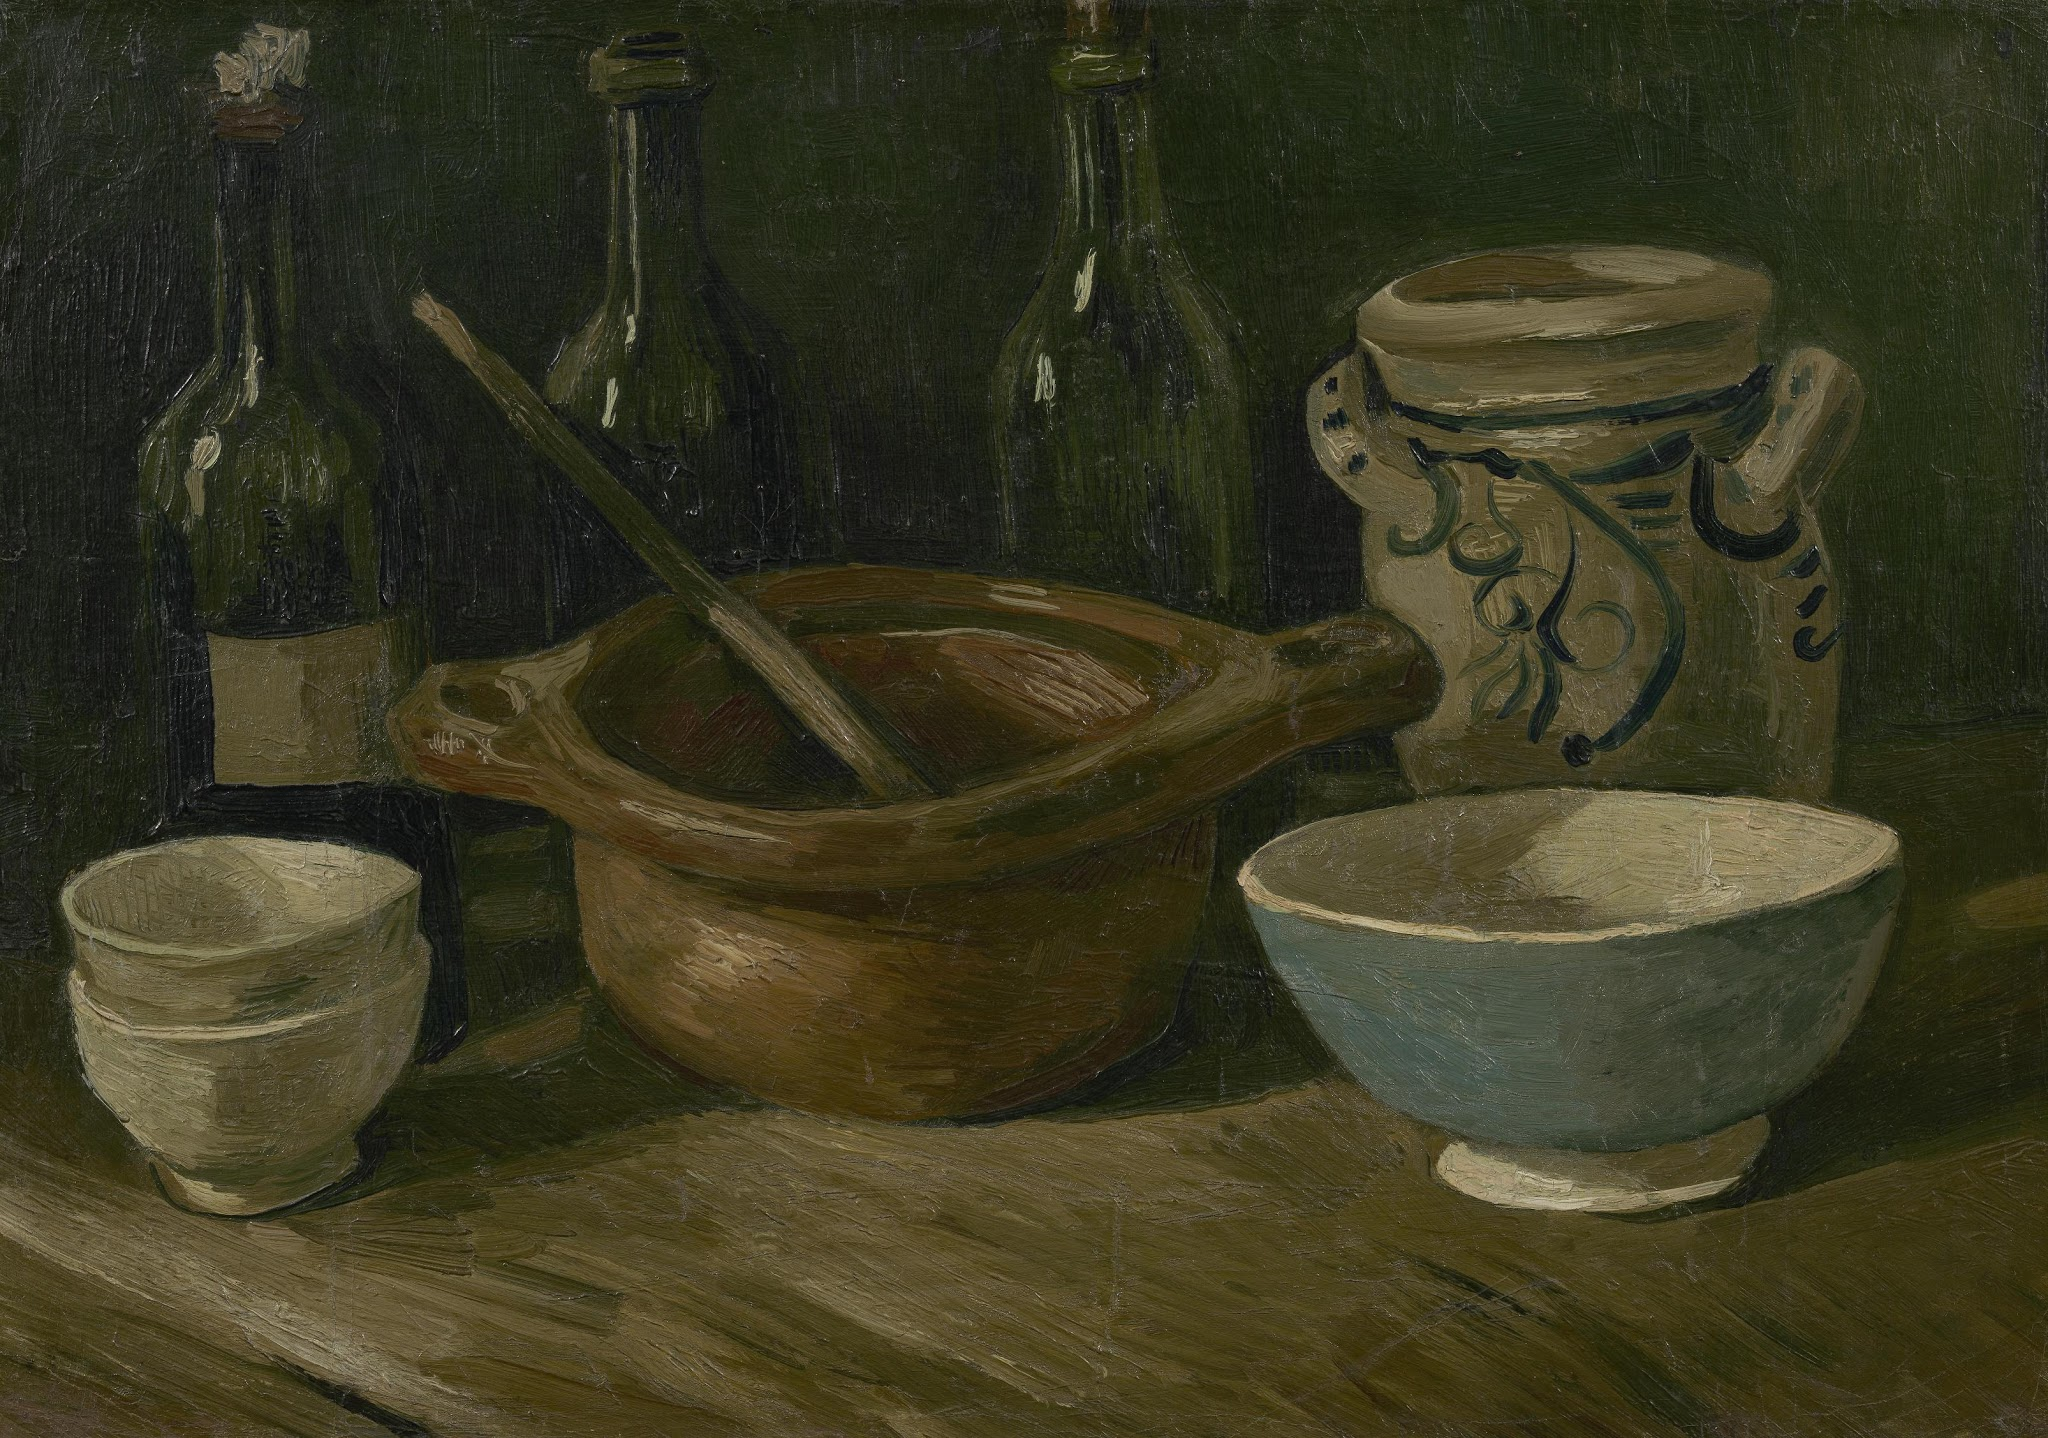 Still Life with Earthenware and Bottles (F 53, JH 538) by Vincent van Gogh